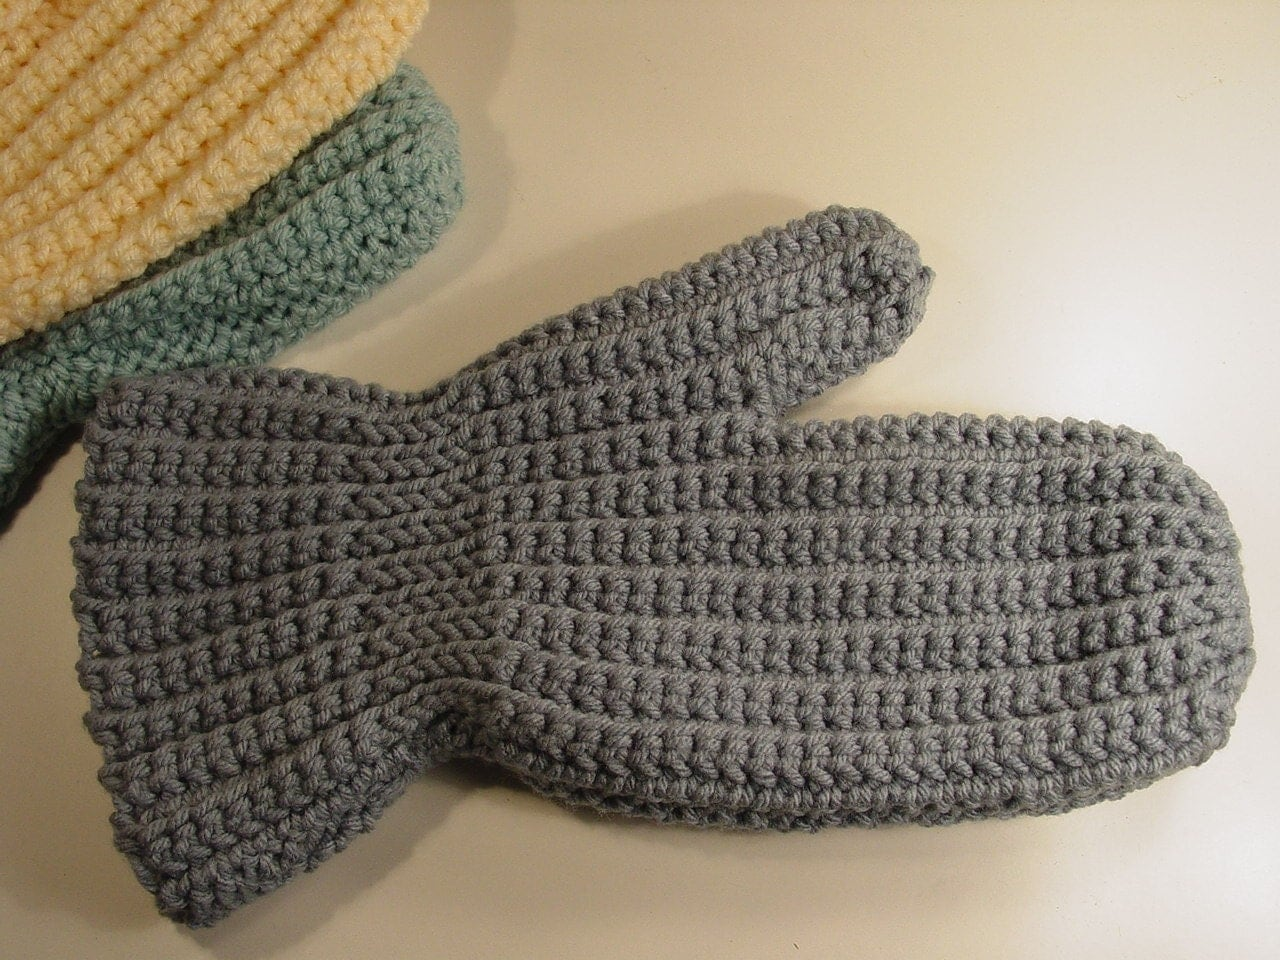 Easy Sideways Crochet Mittens Pattern pdf by madcowdog on Etsy